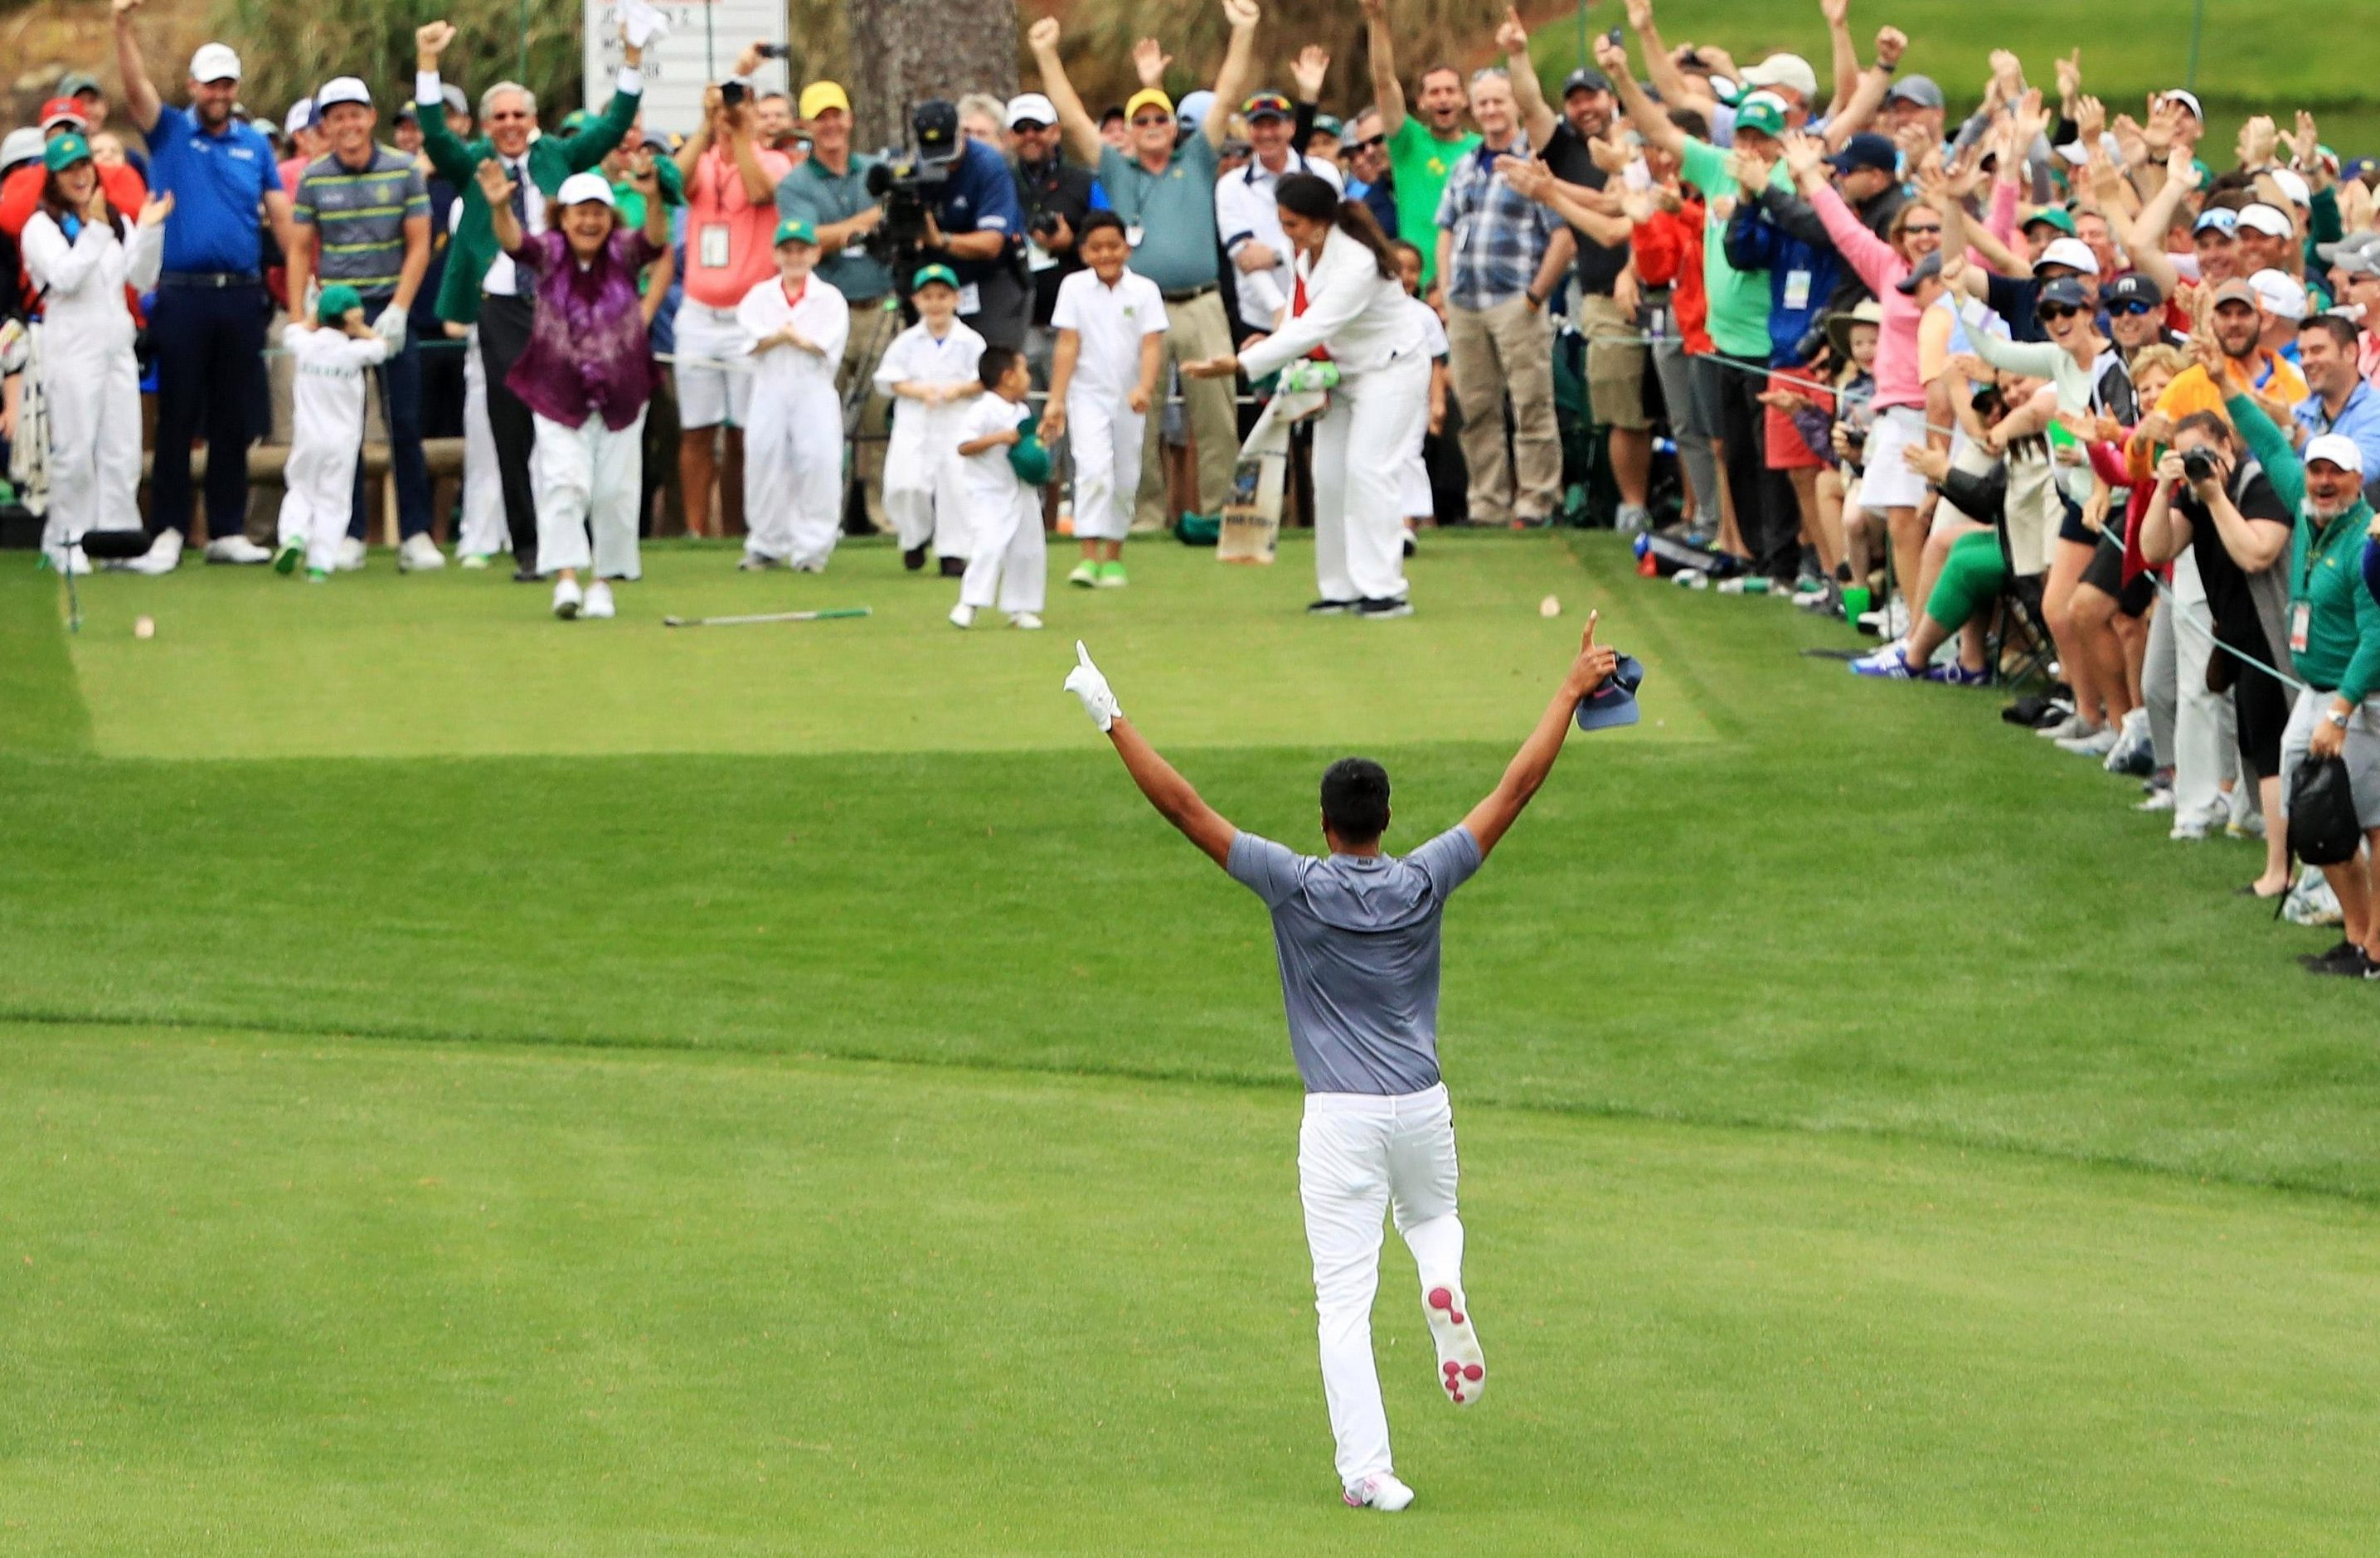 Tony Finau's ankle dislocates as he jumps down the seventh fairway at Augusta